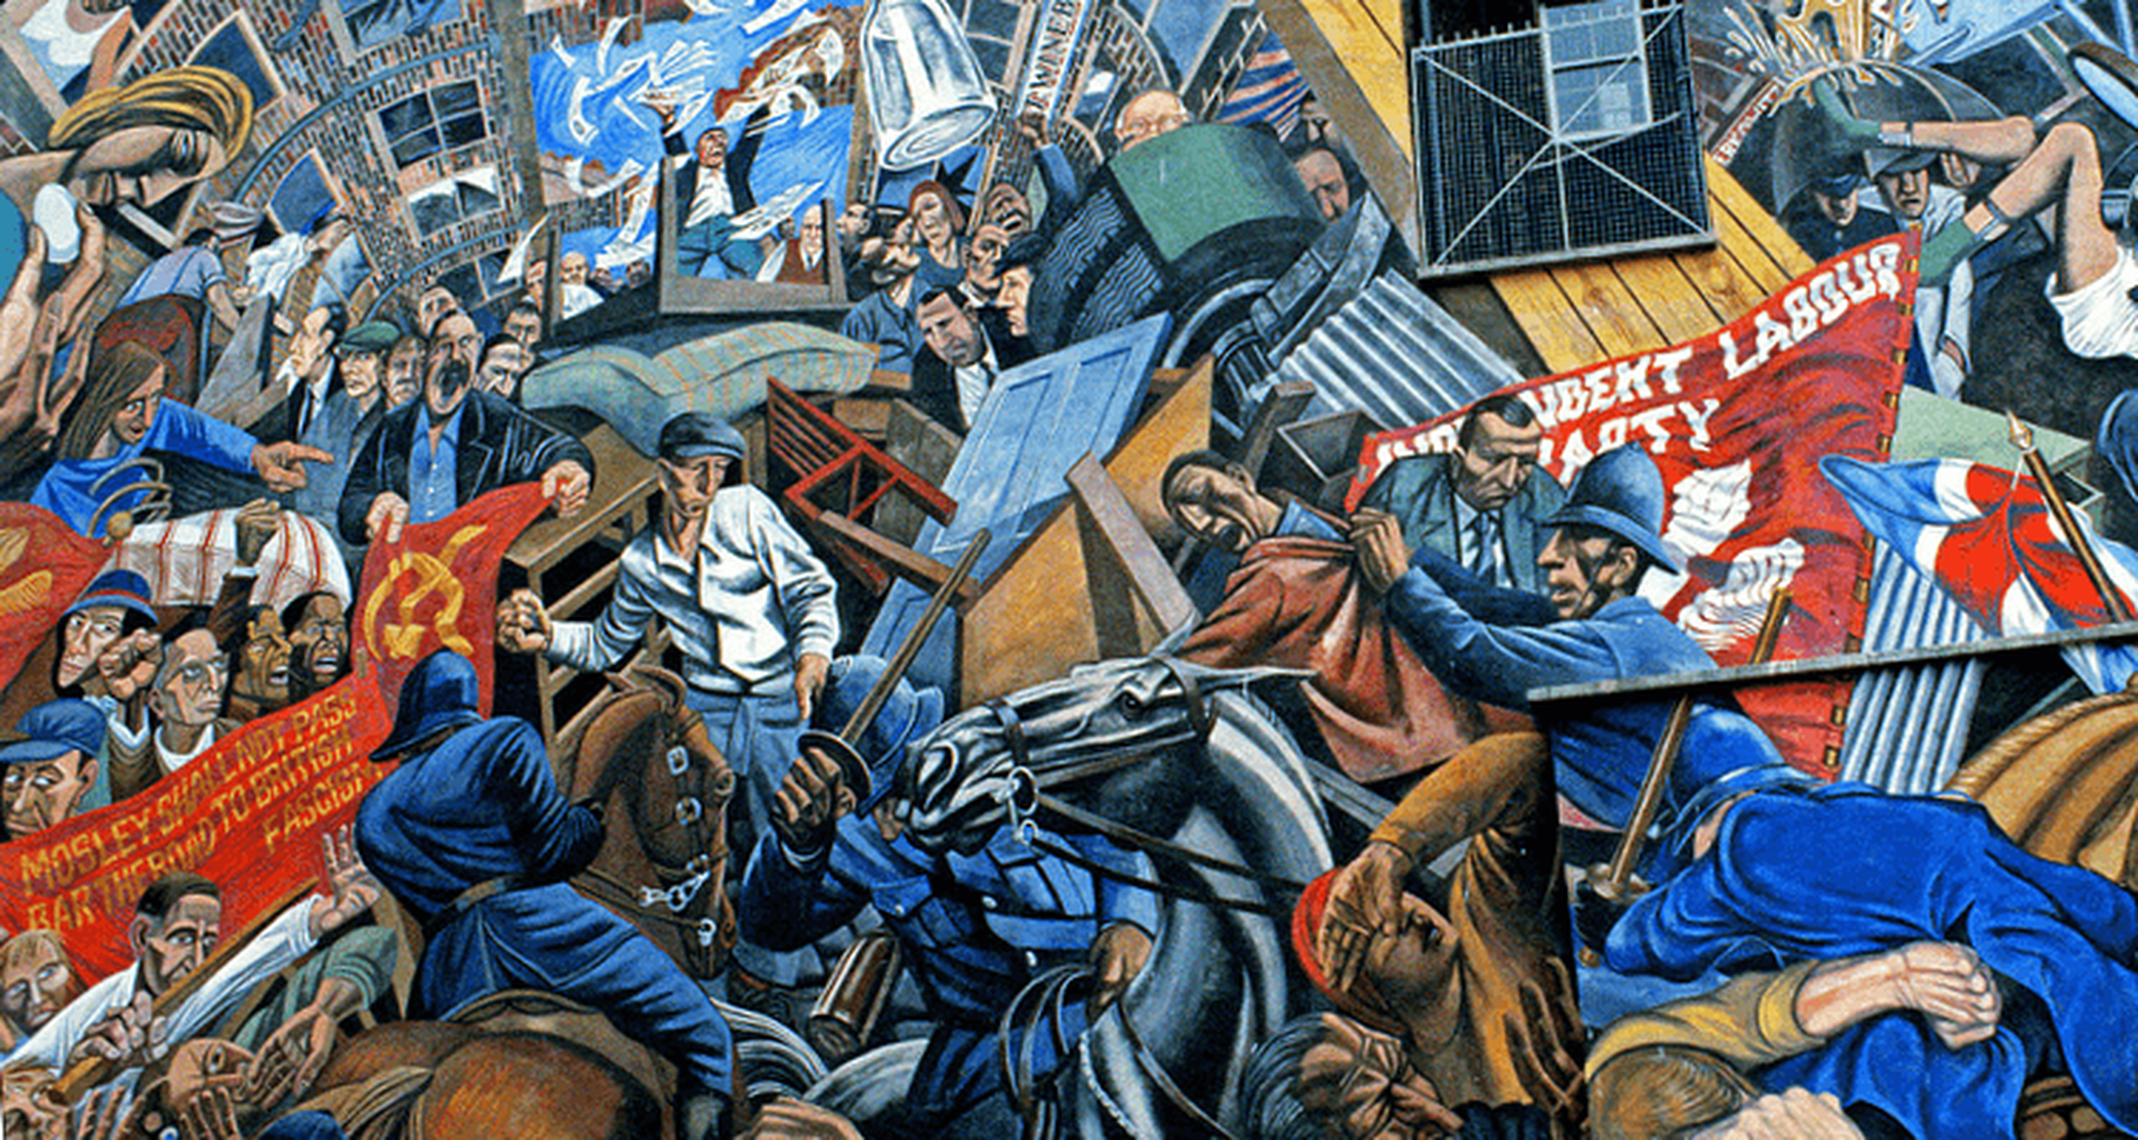 If we re cut we all bleed the same london for Battle of cable street mural